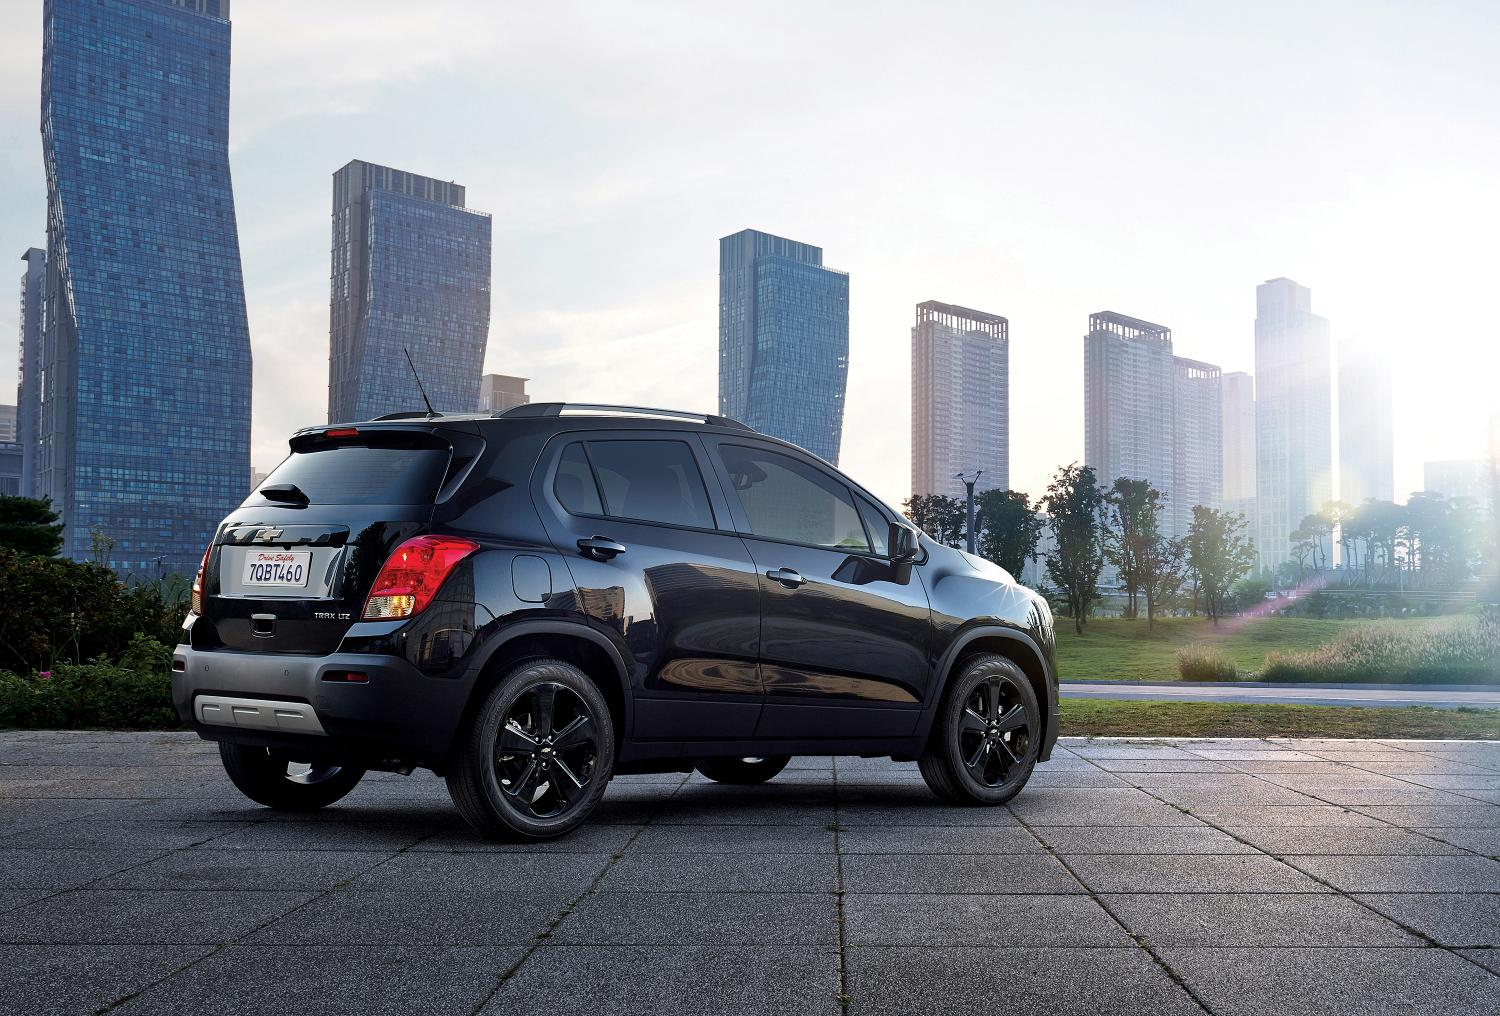 2015 Chevy Tahoe Ltz Chevrolet channels the Dark Side with the Trax Midnight ...